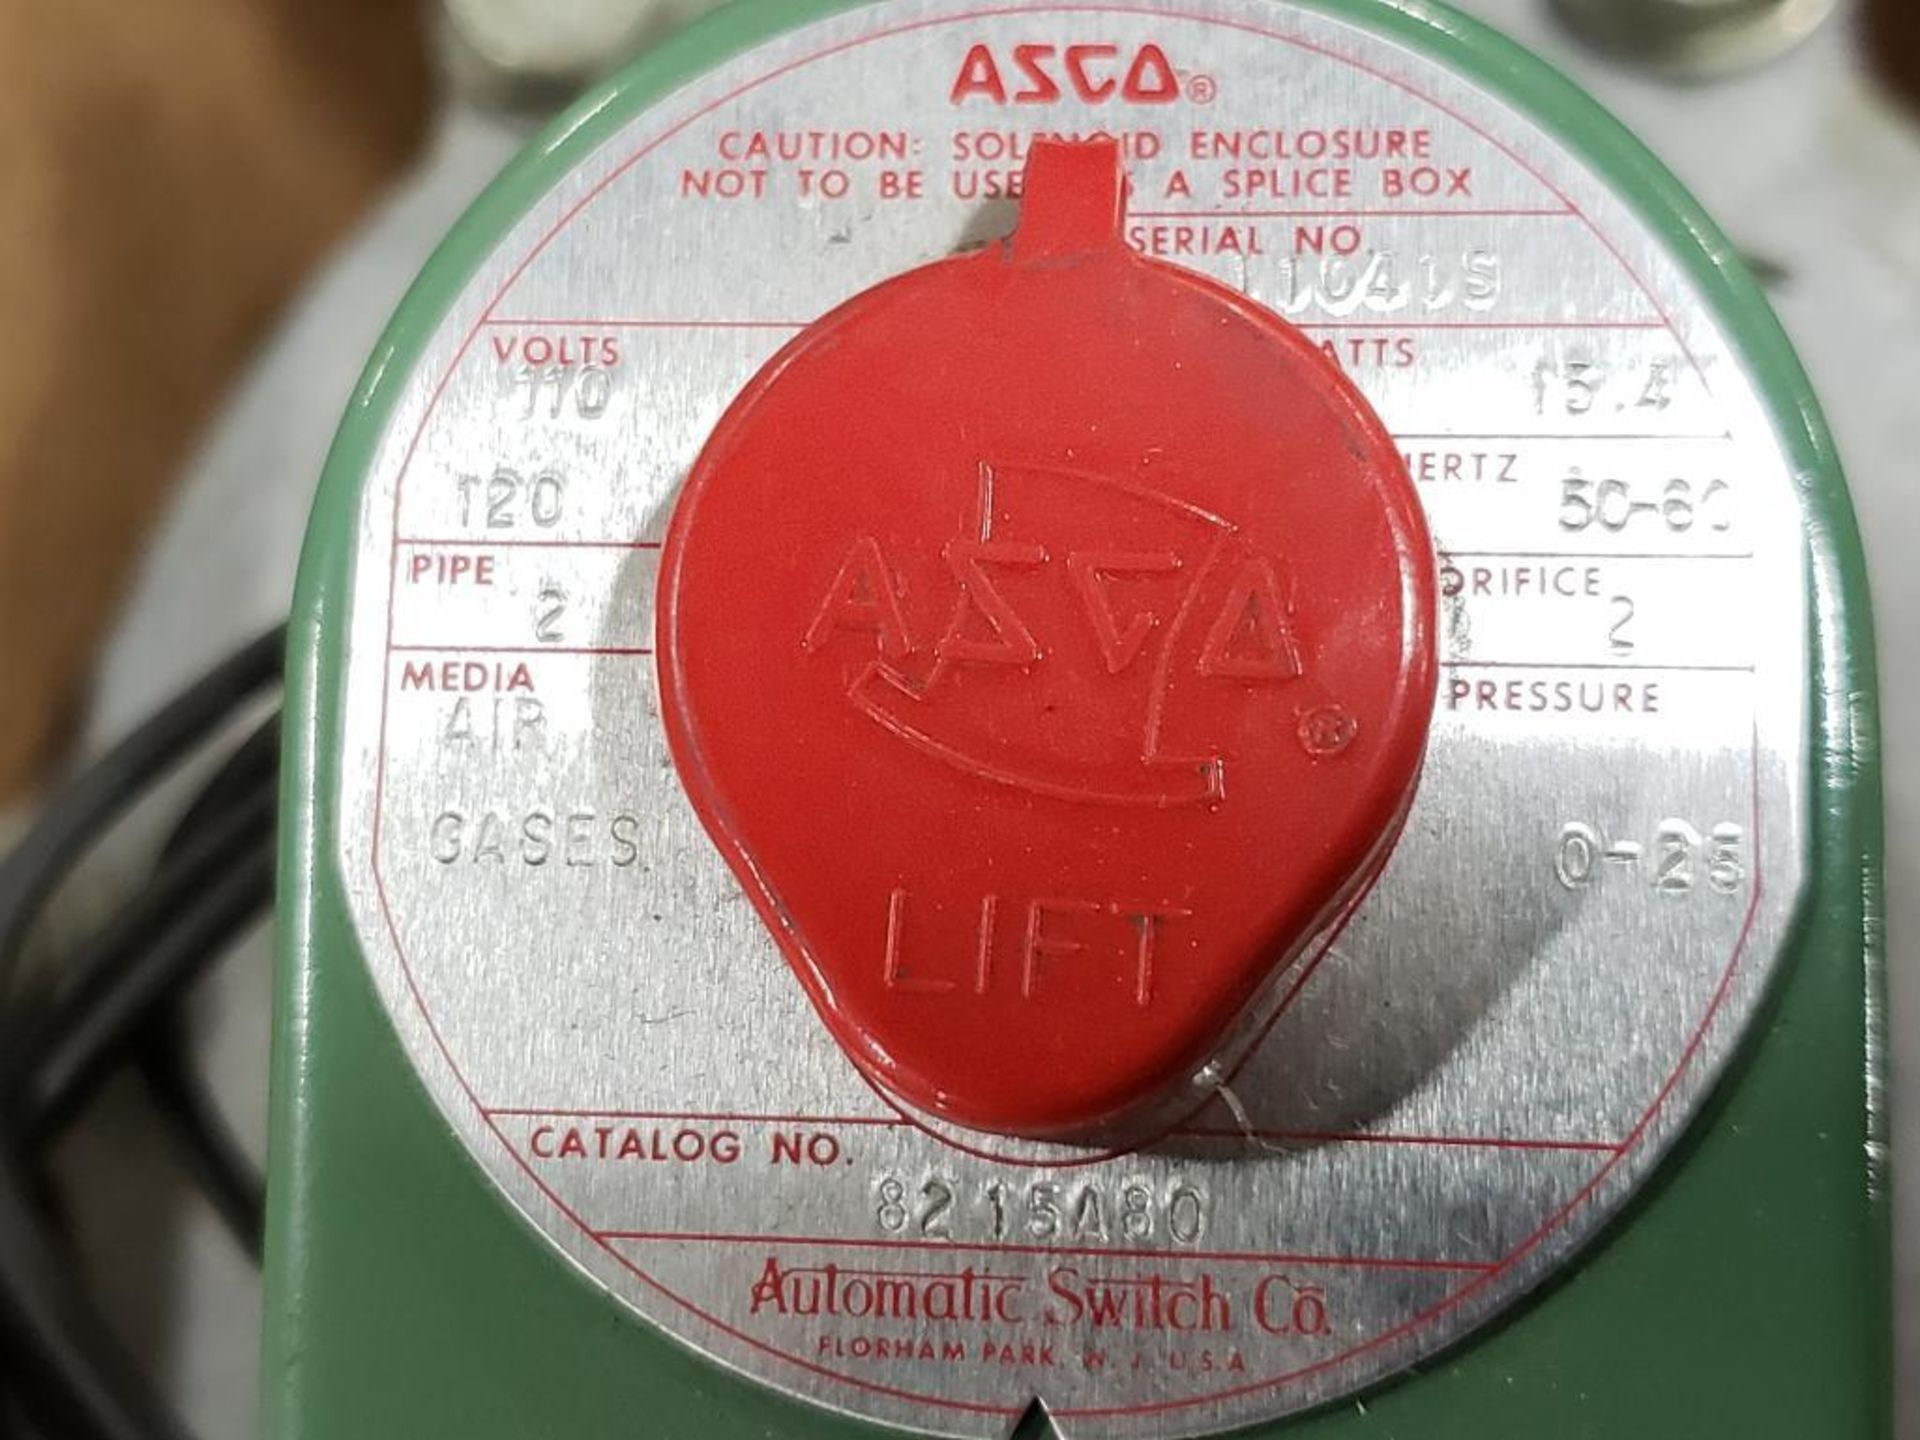 Qty 2- Assorted ASCO solenoid with valve body. - Image 7 of 7